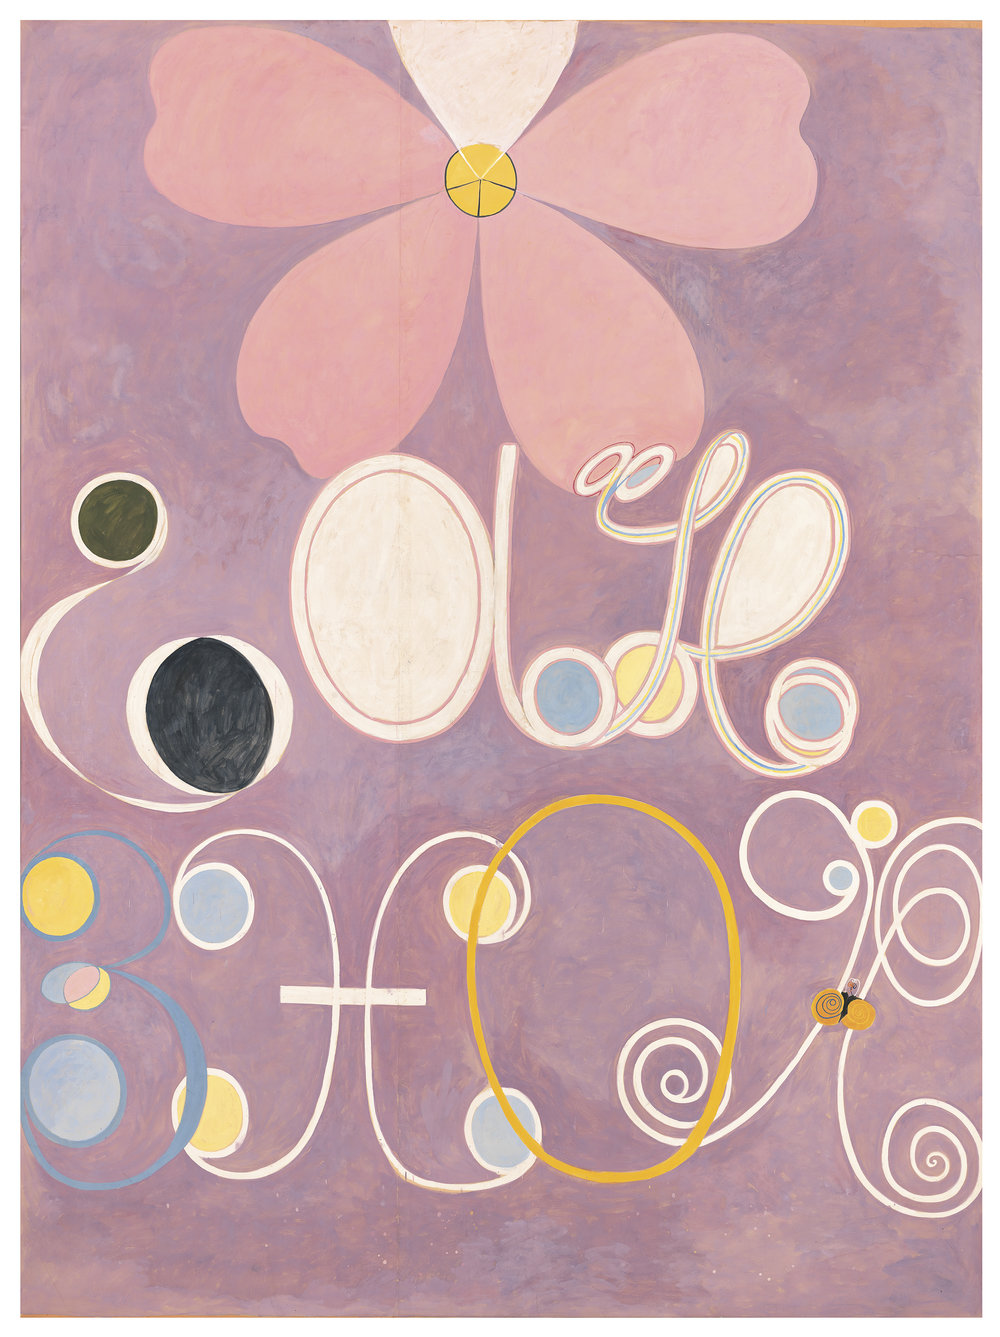 Hilma af Klint   Group IV, no 5. The Ten Largest  315 x 235 cm Edition of 10 + 2 AP 75% New Zeeland wool, 25% silk Hand-knotted